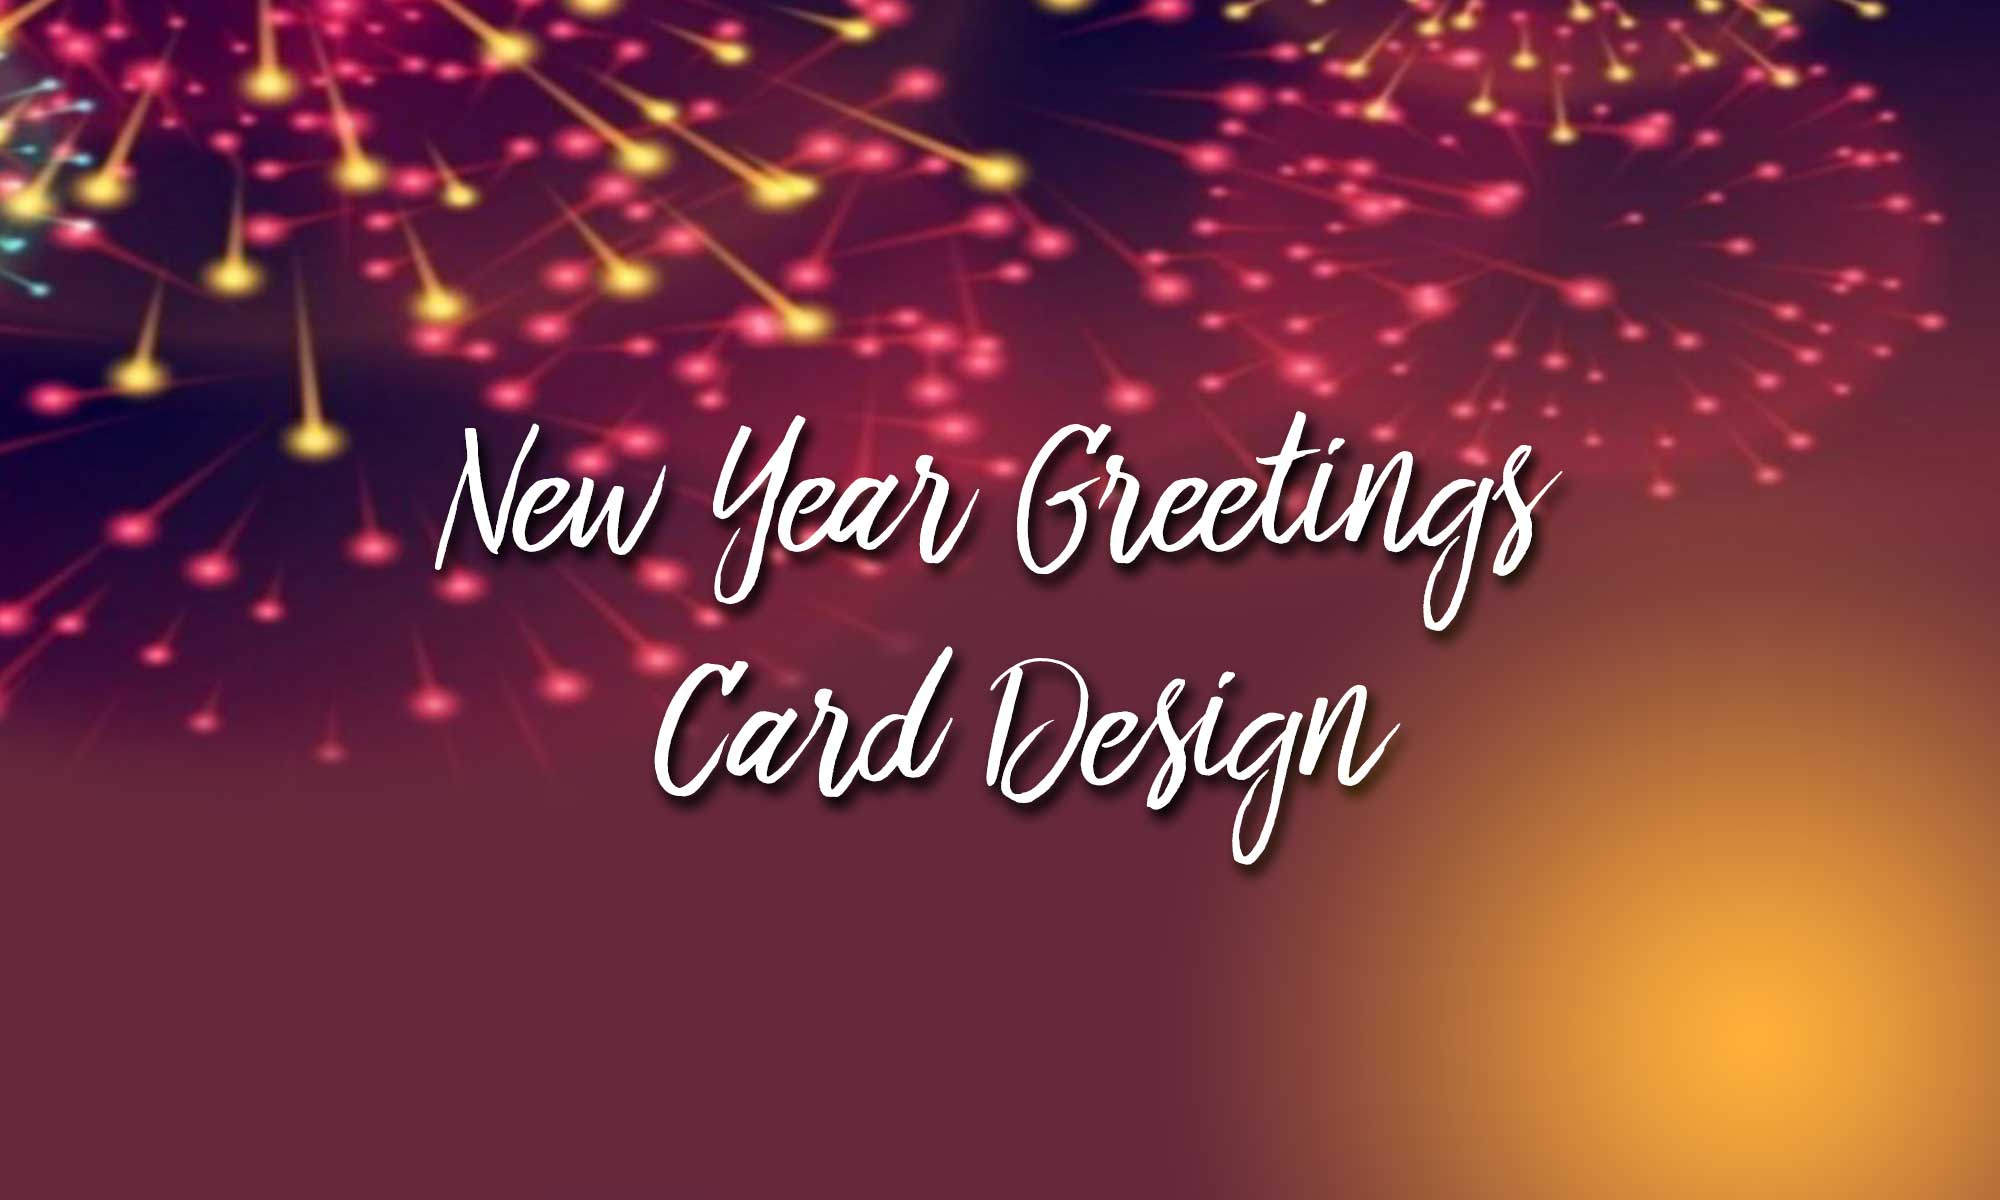 New-Year-Greetings-Card-Design